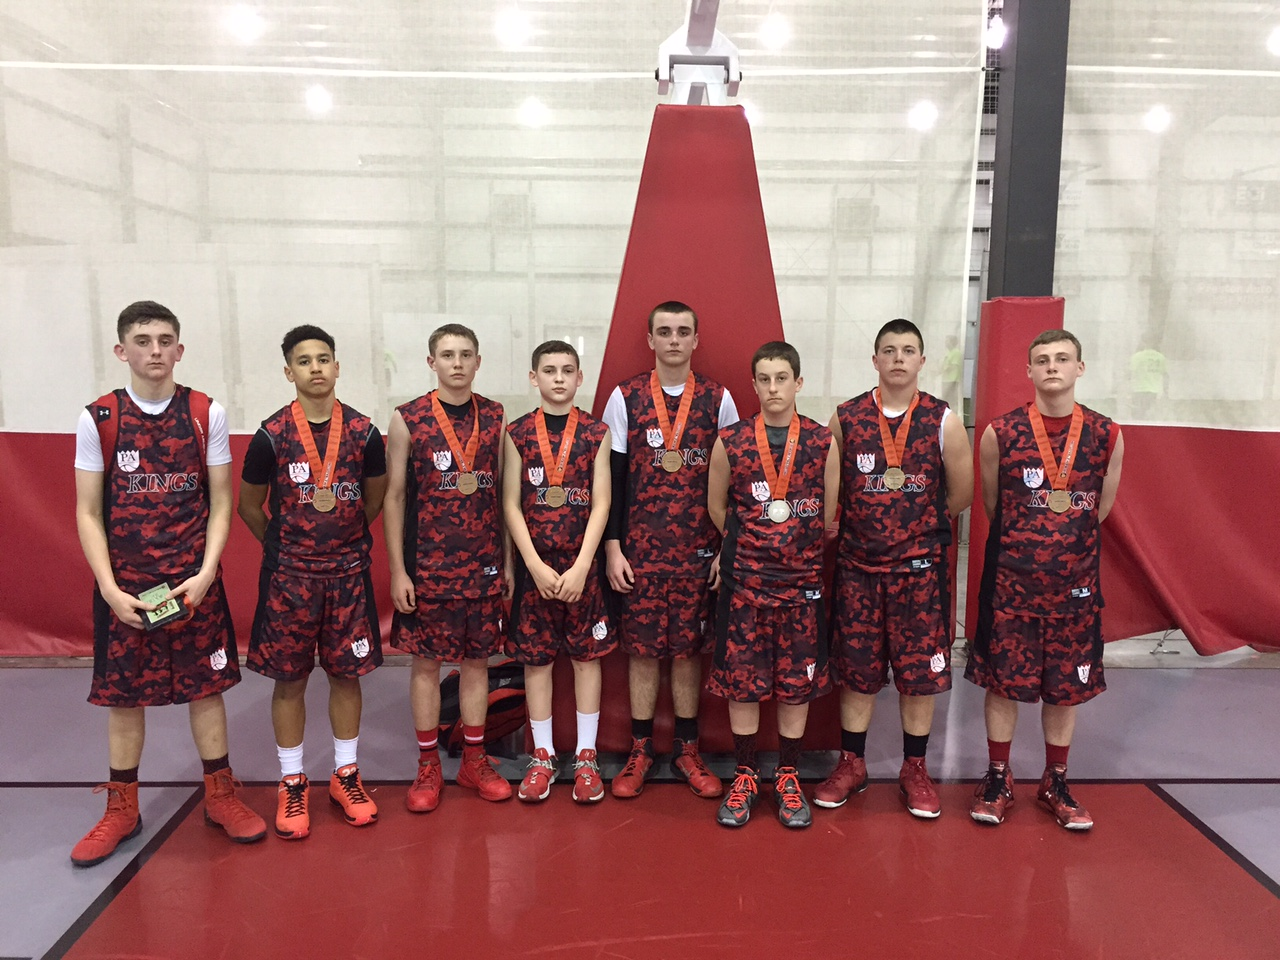 8th runner up slippery rock PA kings